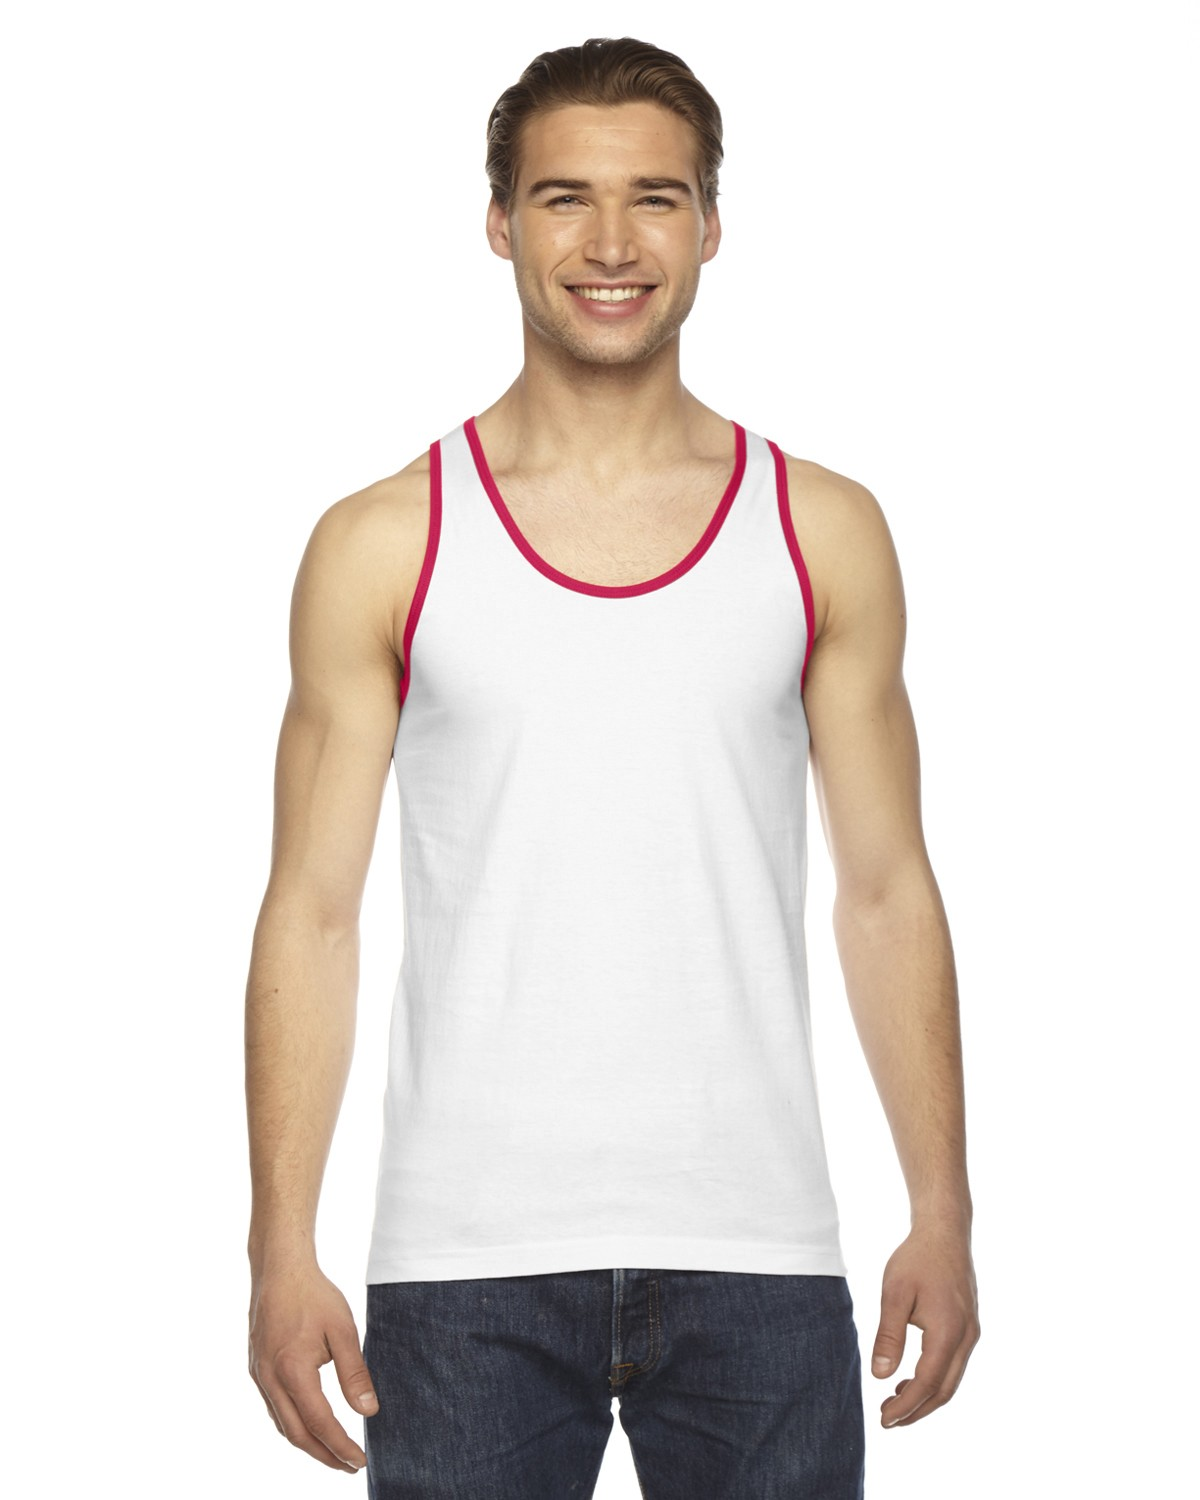 2408W American Apparel WHITE/RED